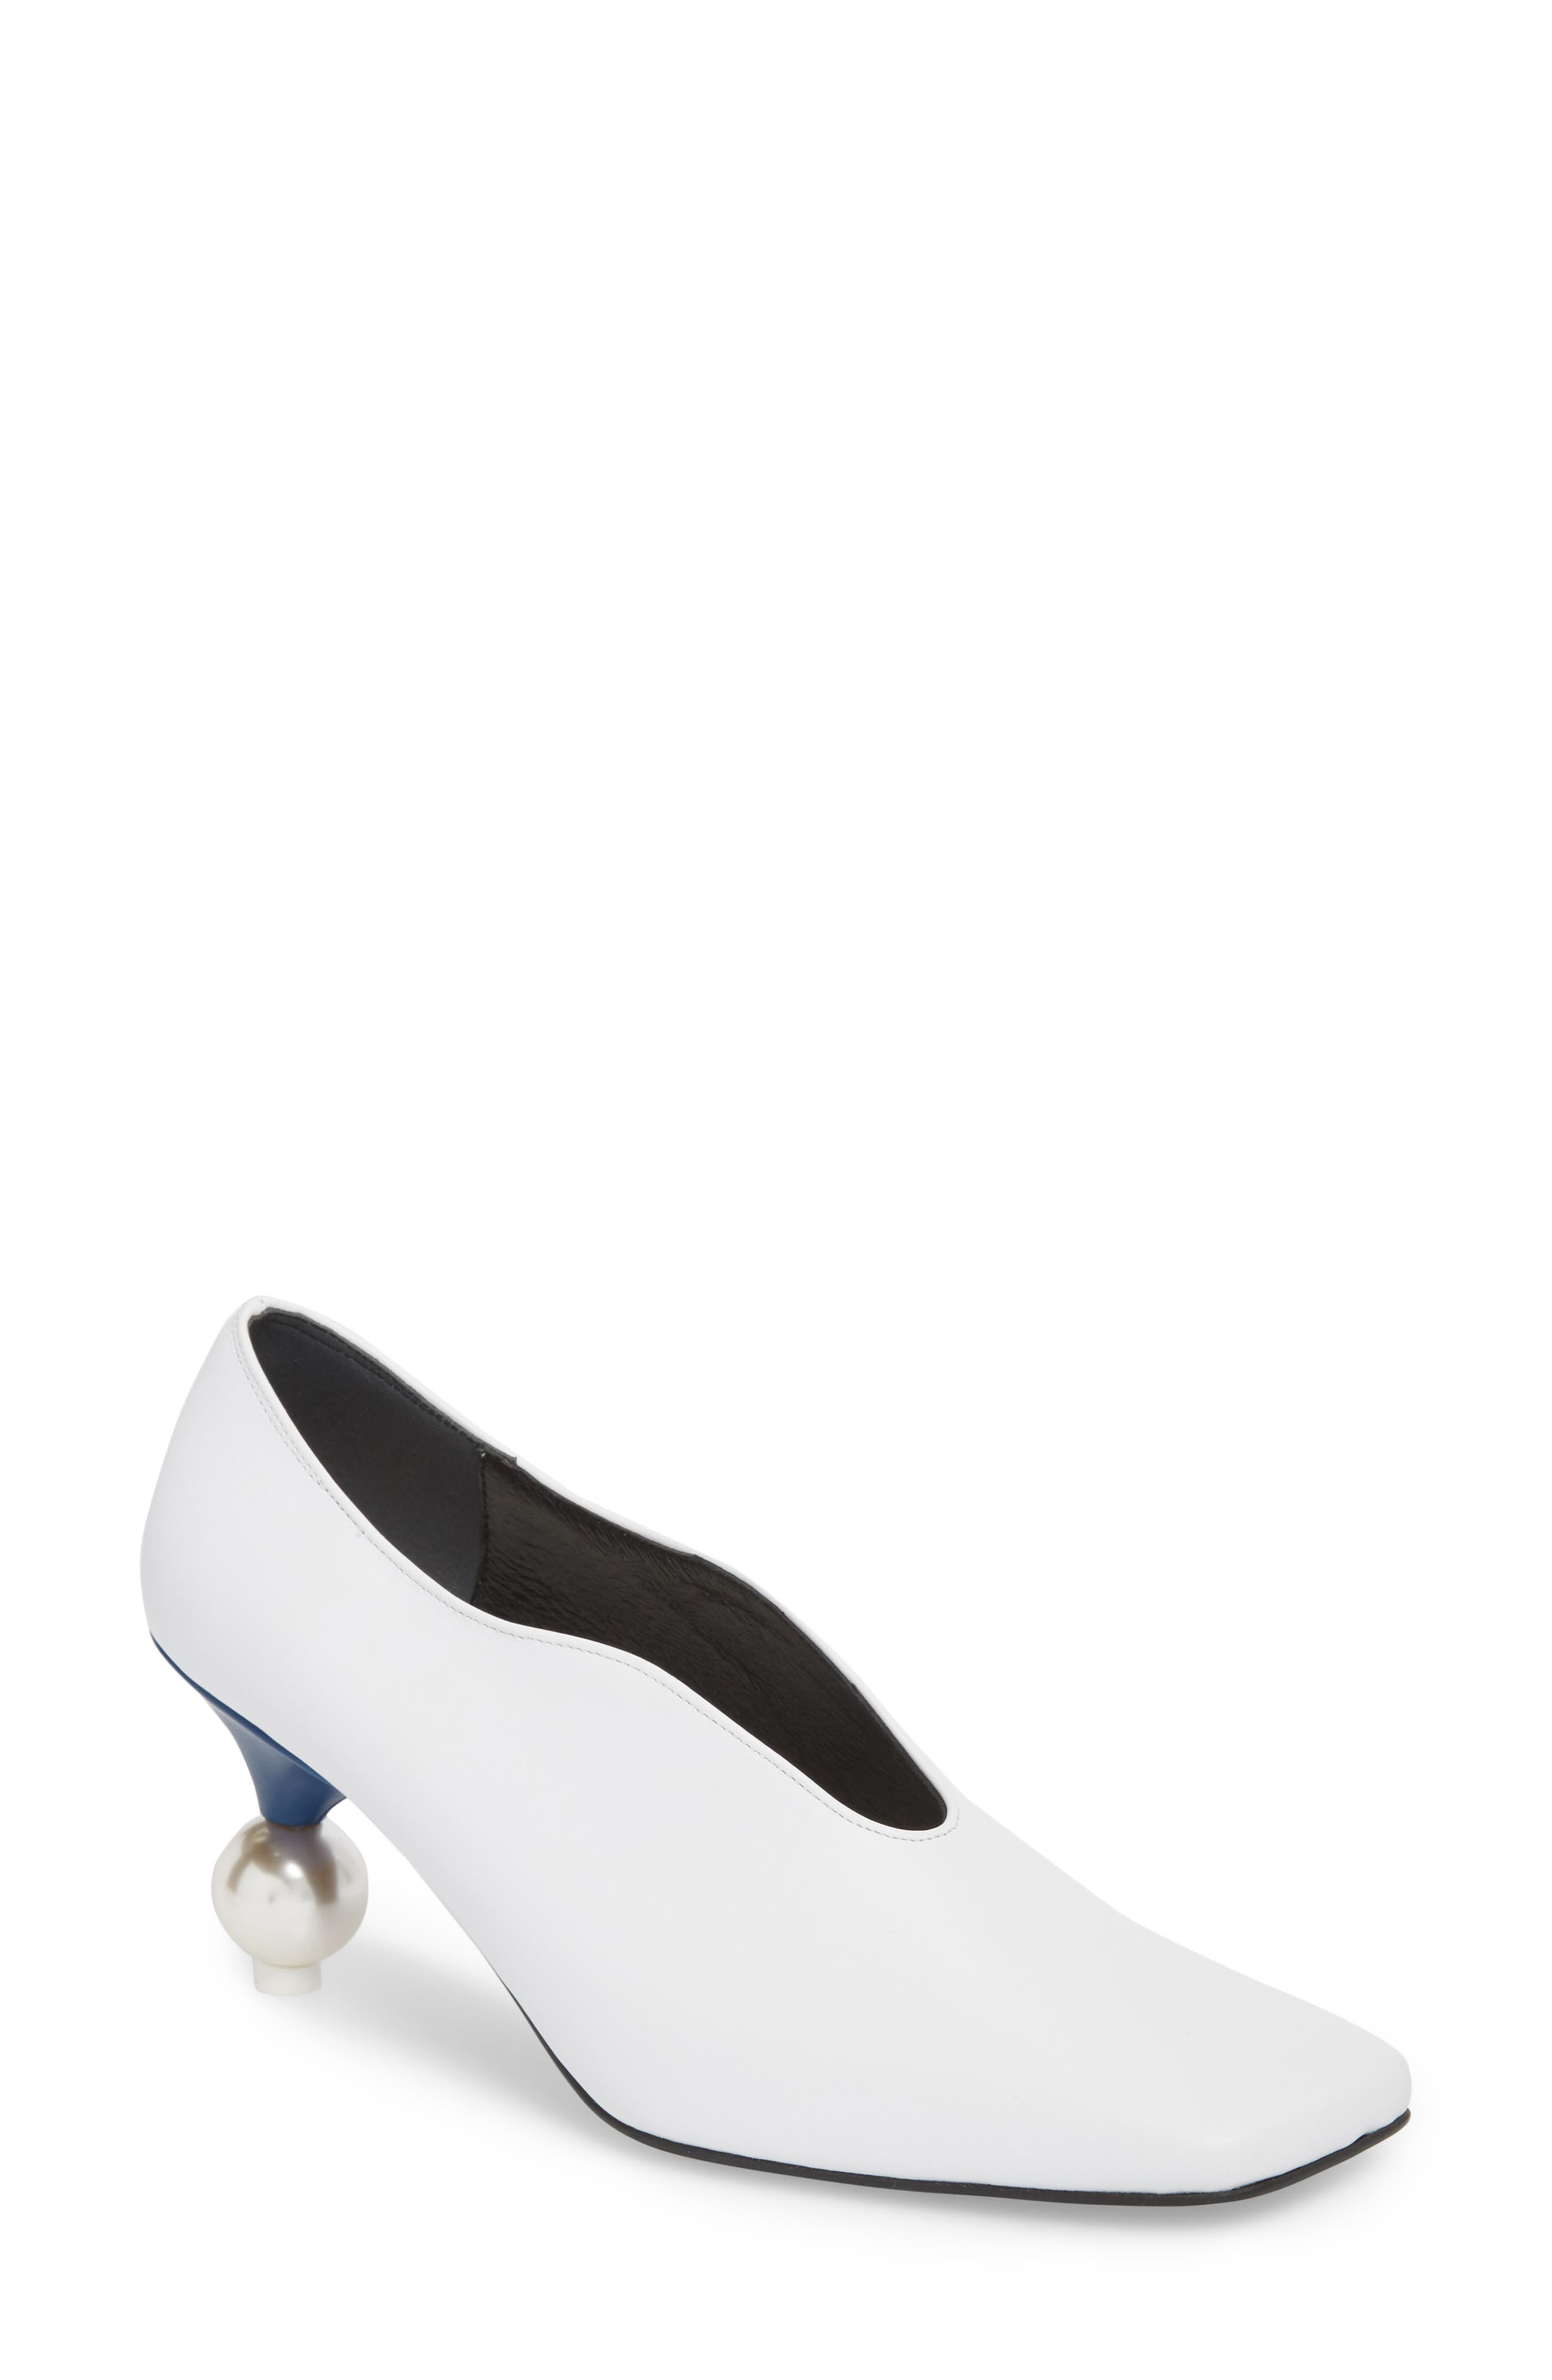 Statement Heel Pump,                             Main thumbnail 1, color,                             White/ Navy